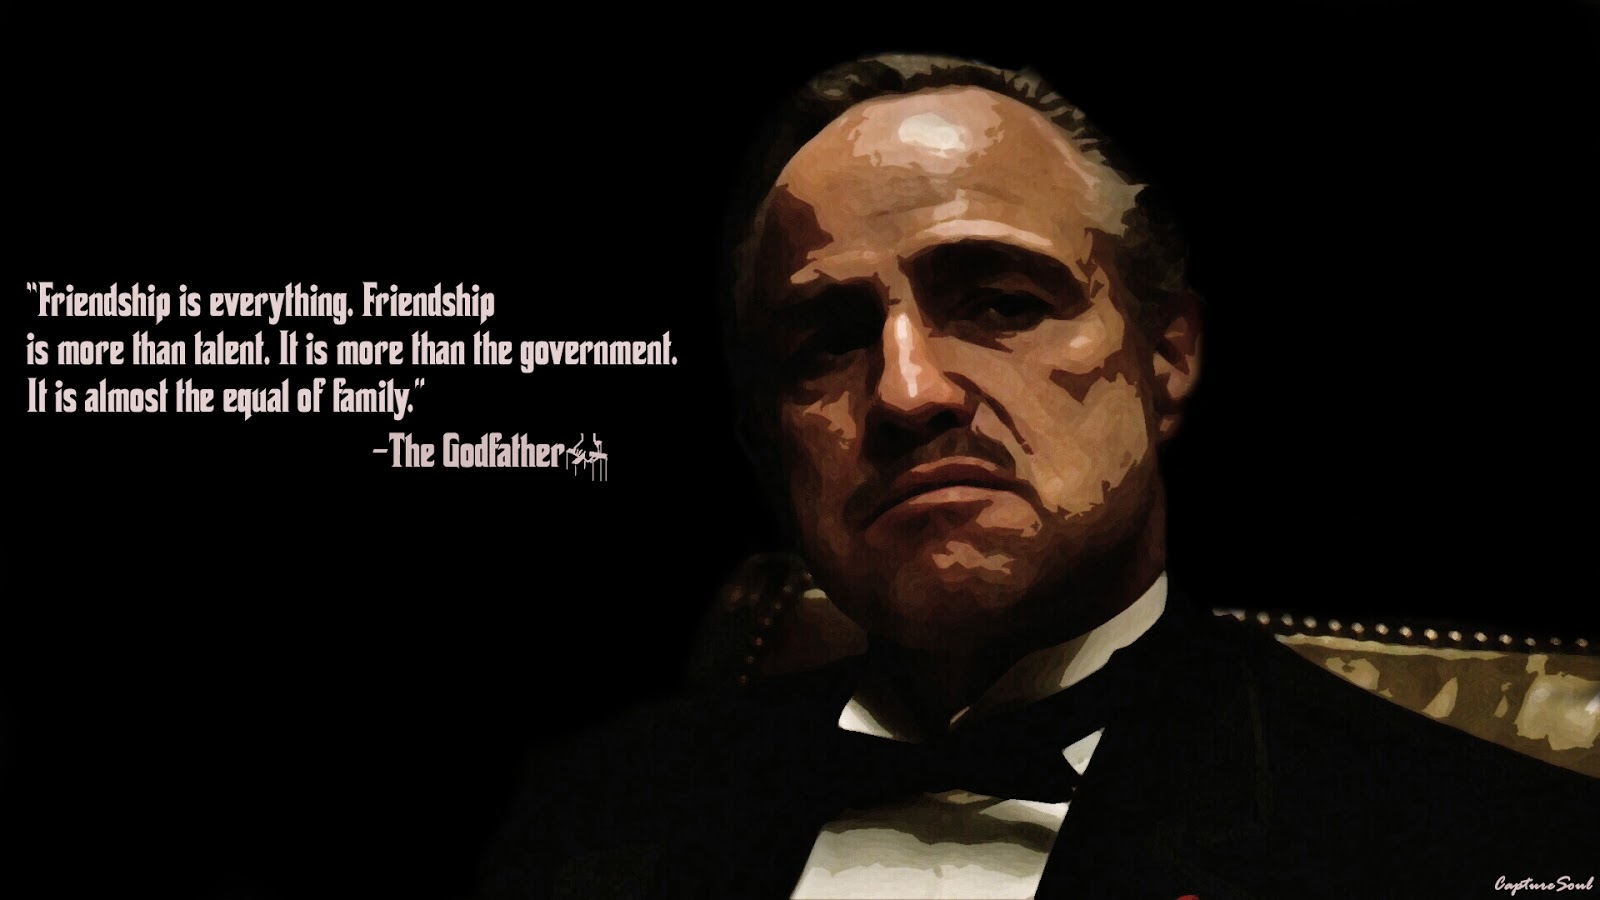 Godfather Wallpaper Quotes The godfather vito corleone 1600x900